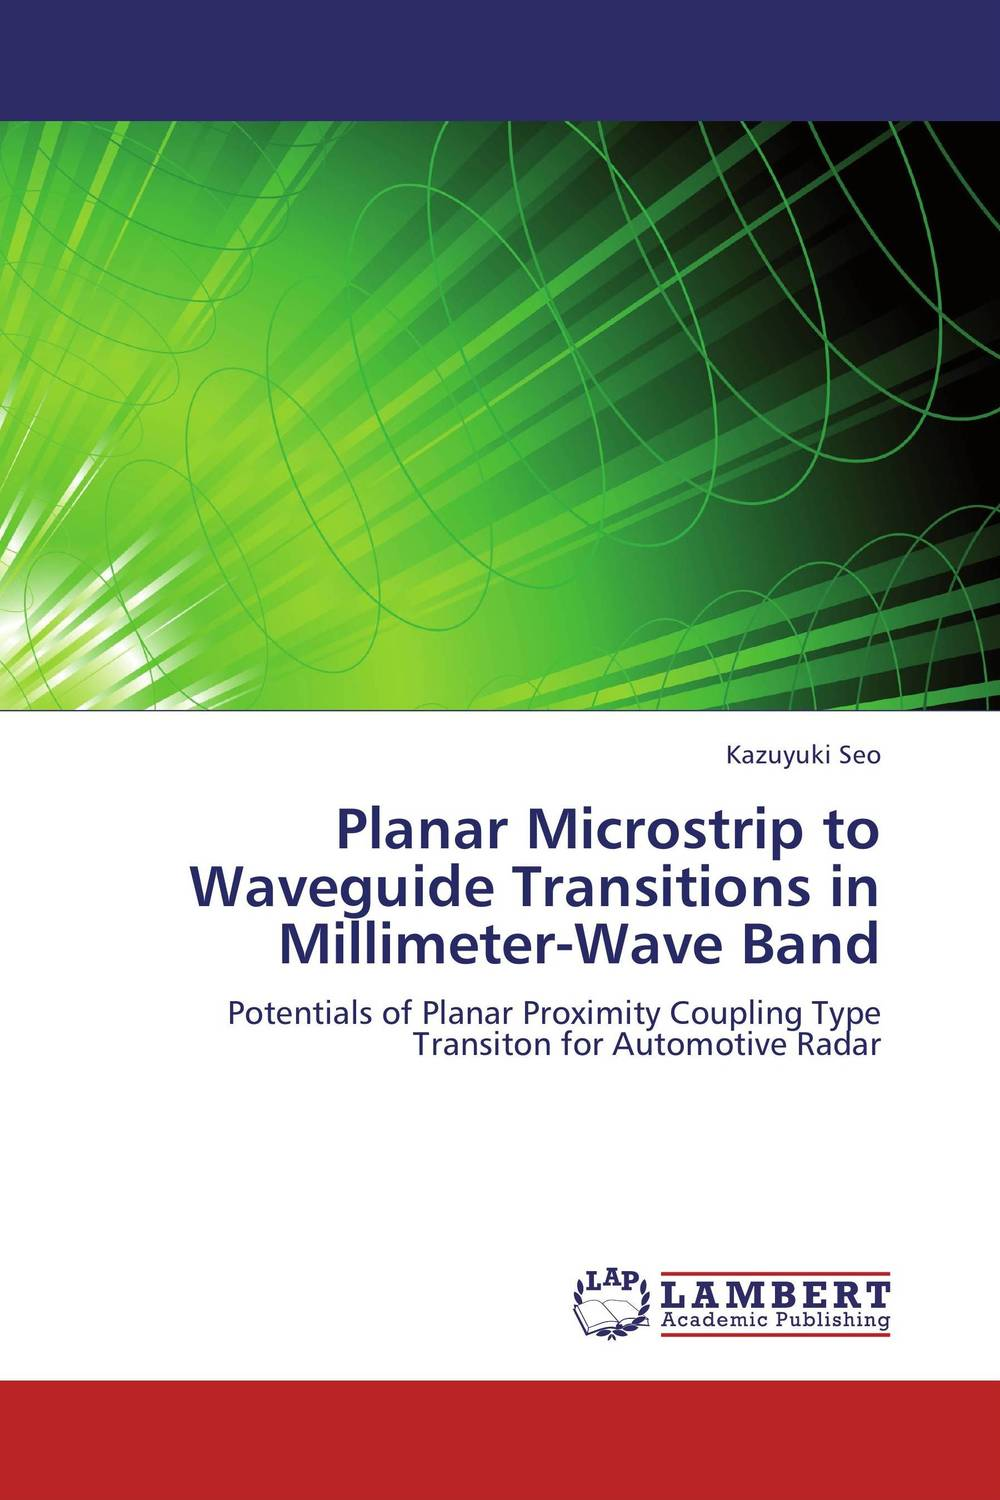 Planar Microstrip to Waveguide Transitions in Millimeter-Wave Band fda 489 replaceable core filter driers are designed to be used in the liquid and suction lines of air conditioning systems